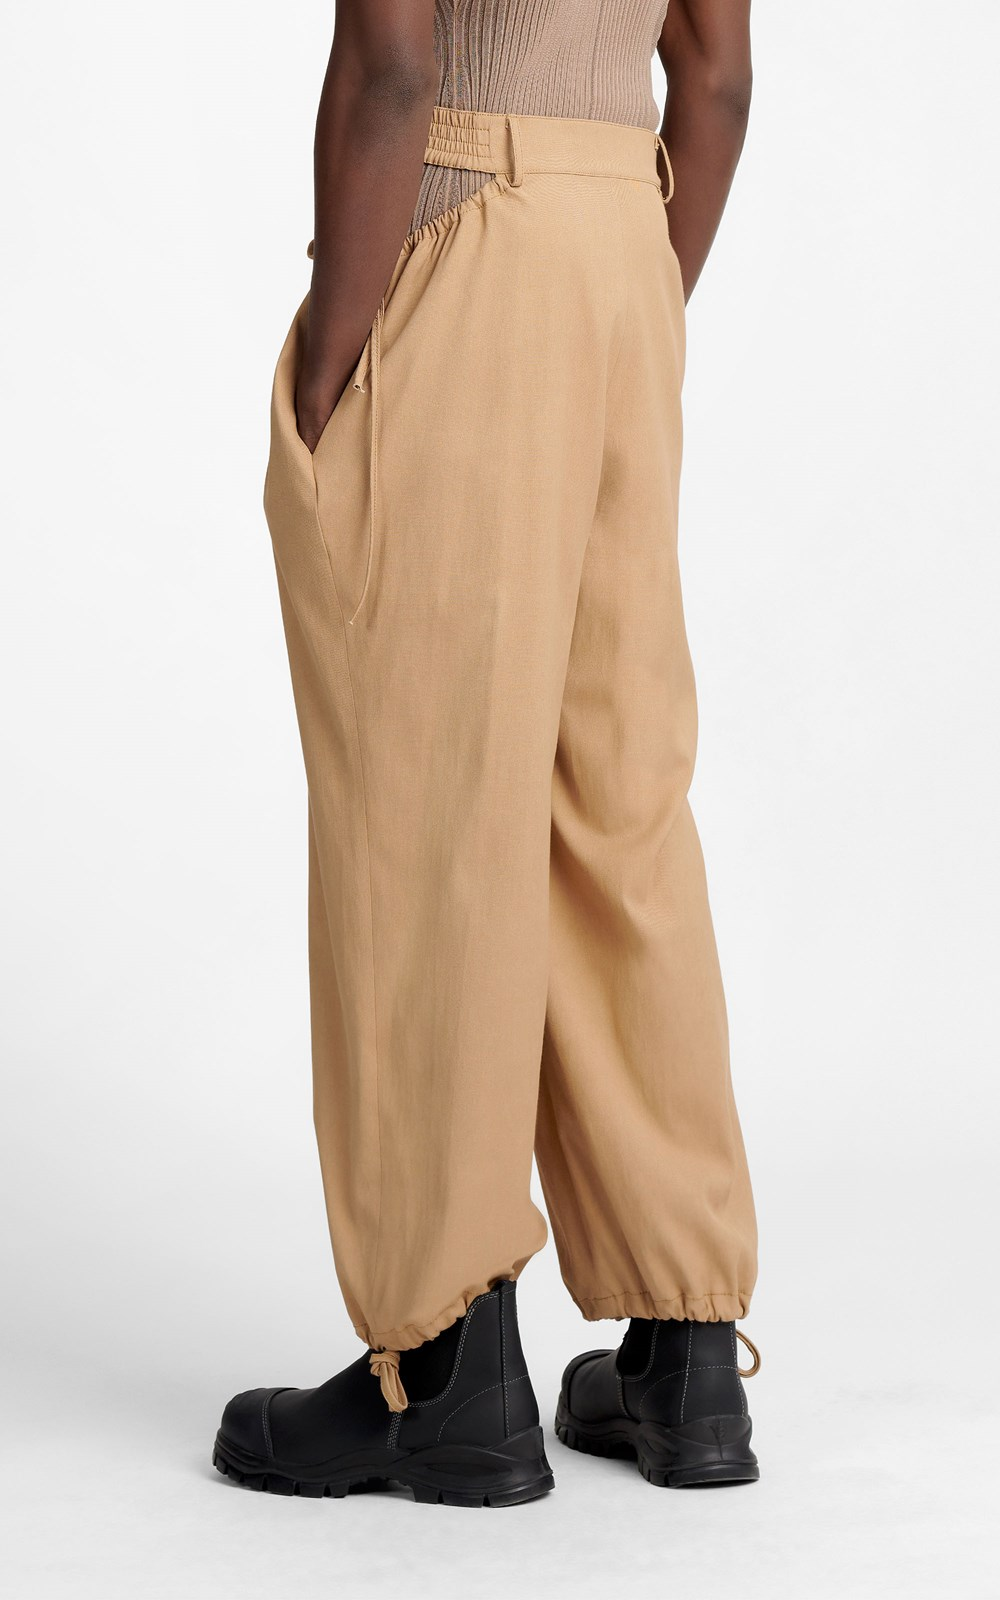 Pants | GATHERED TIE PANT